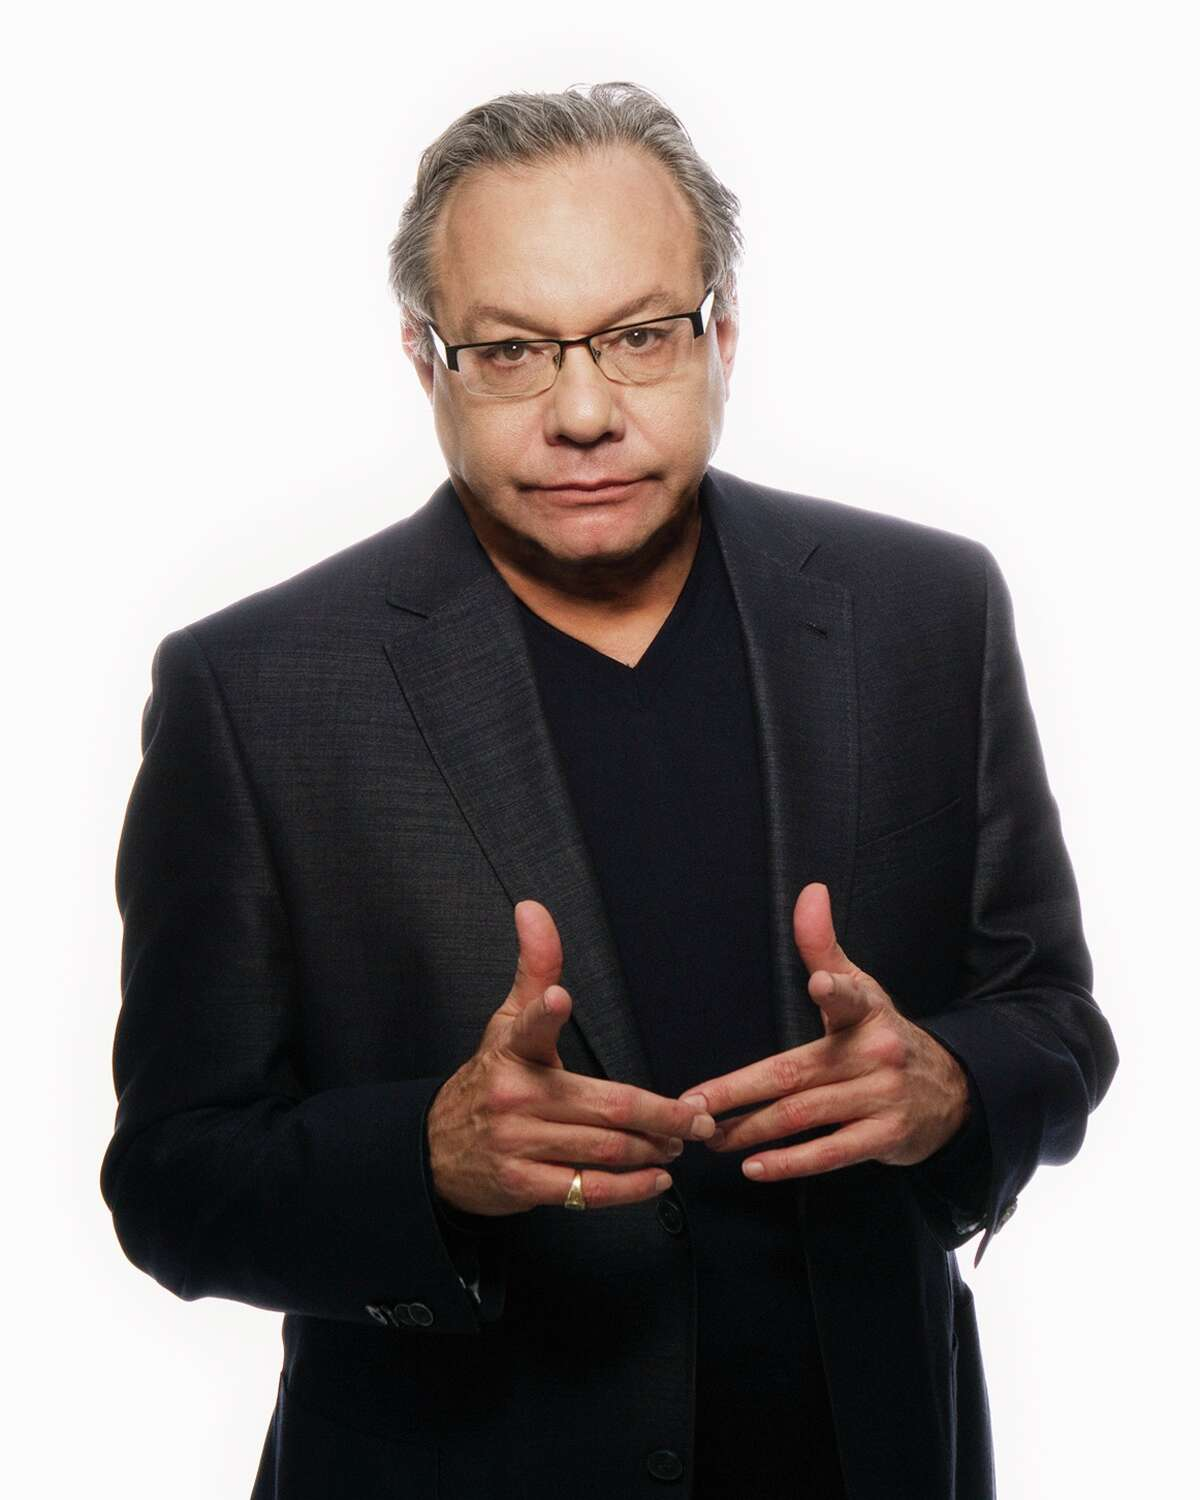 comedian Lewis Black Photo Credit: Clay McBride Moved to Selects: 09/25/12 16:09:09, fmicklow